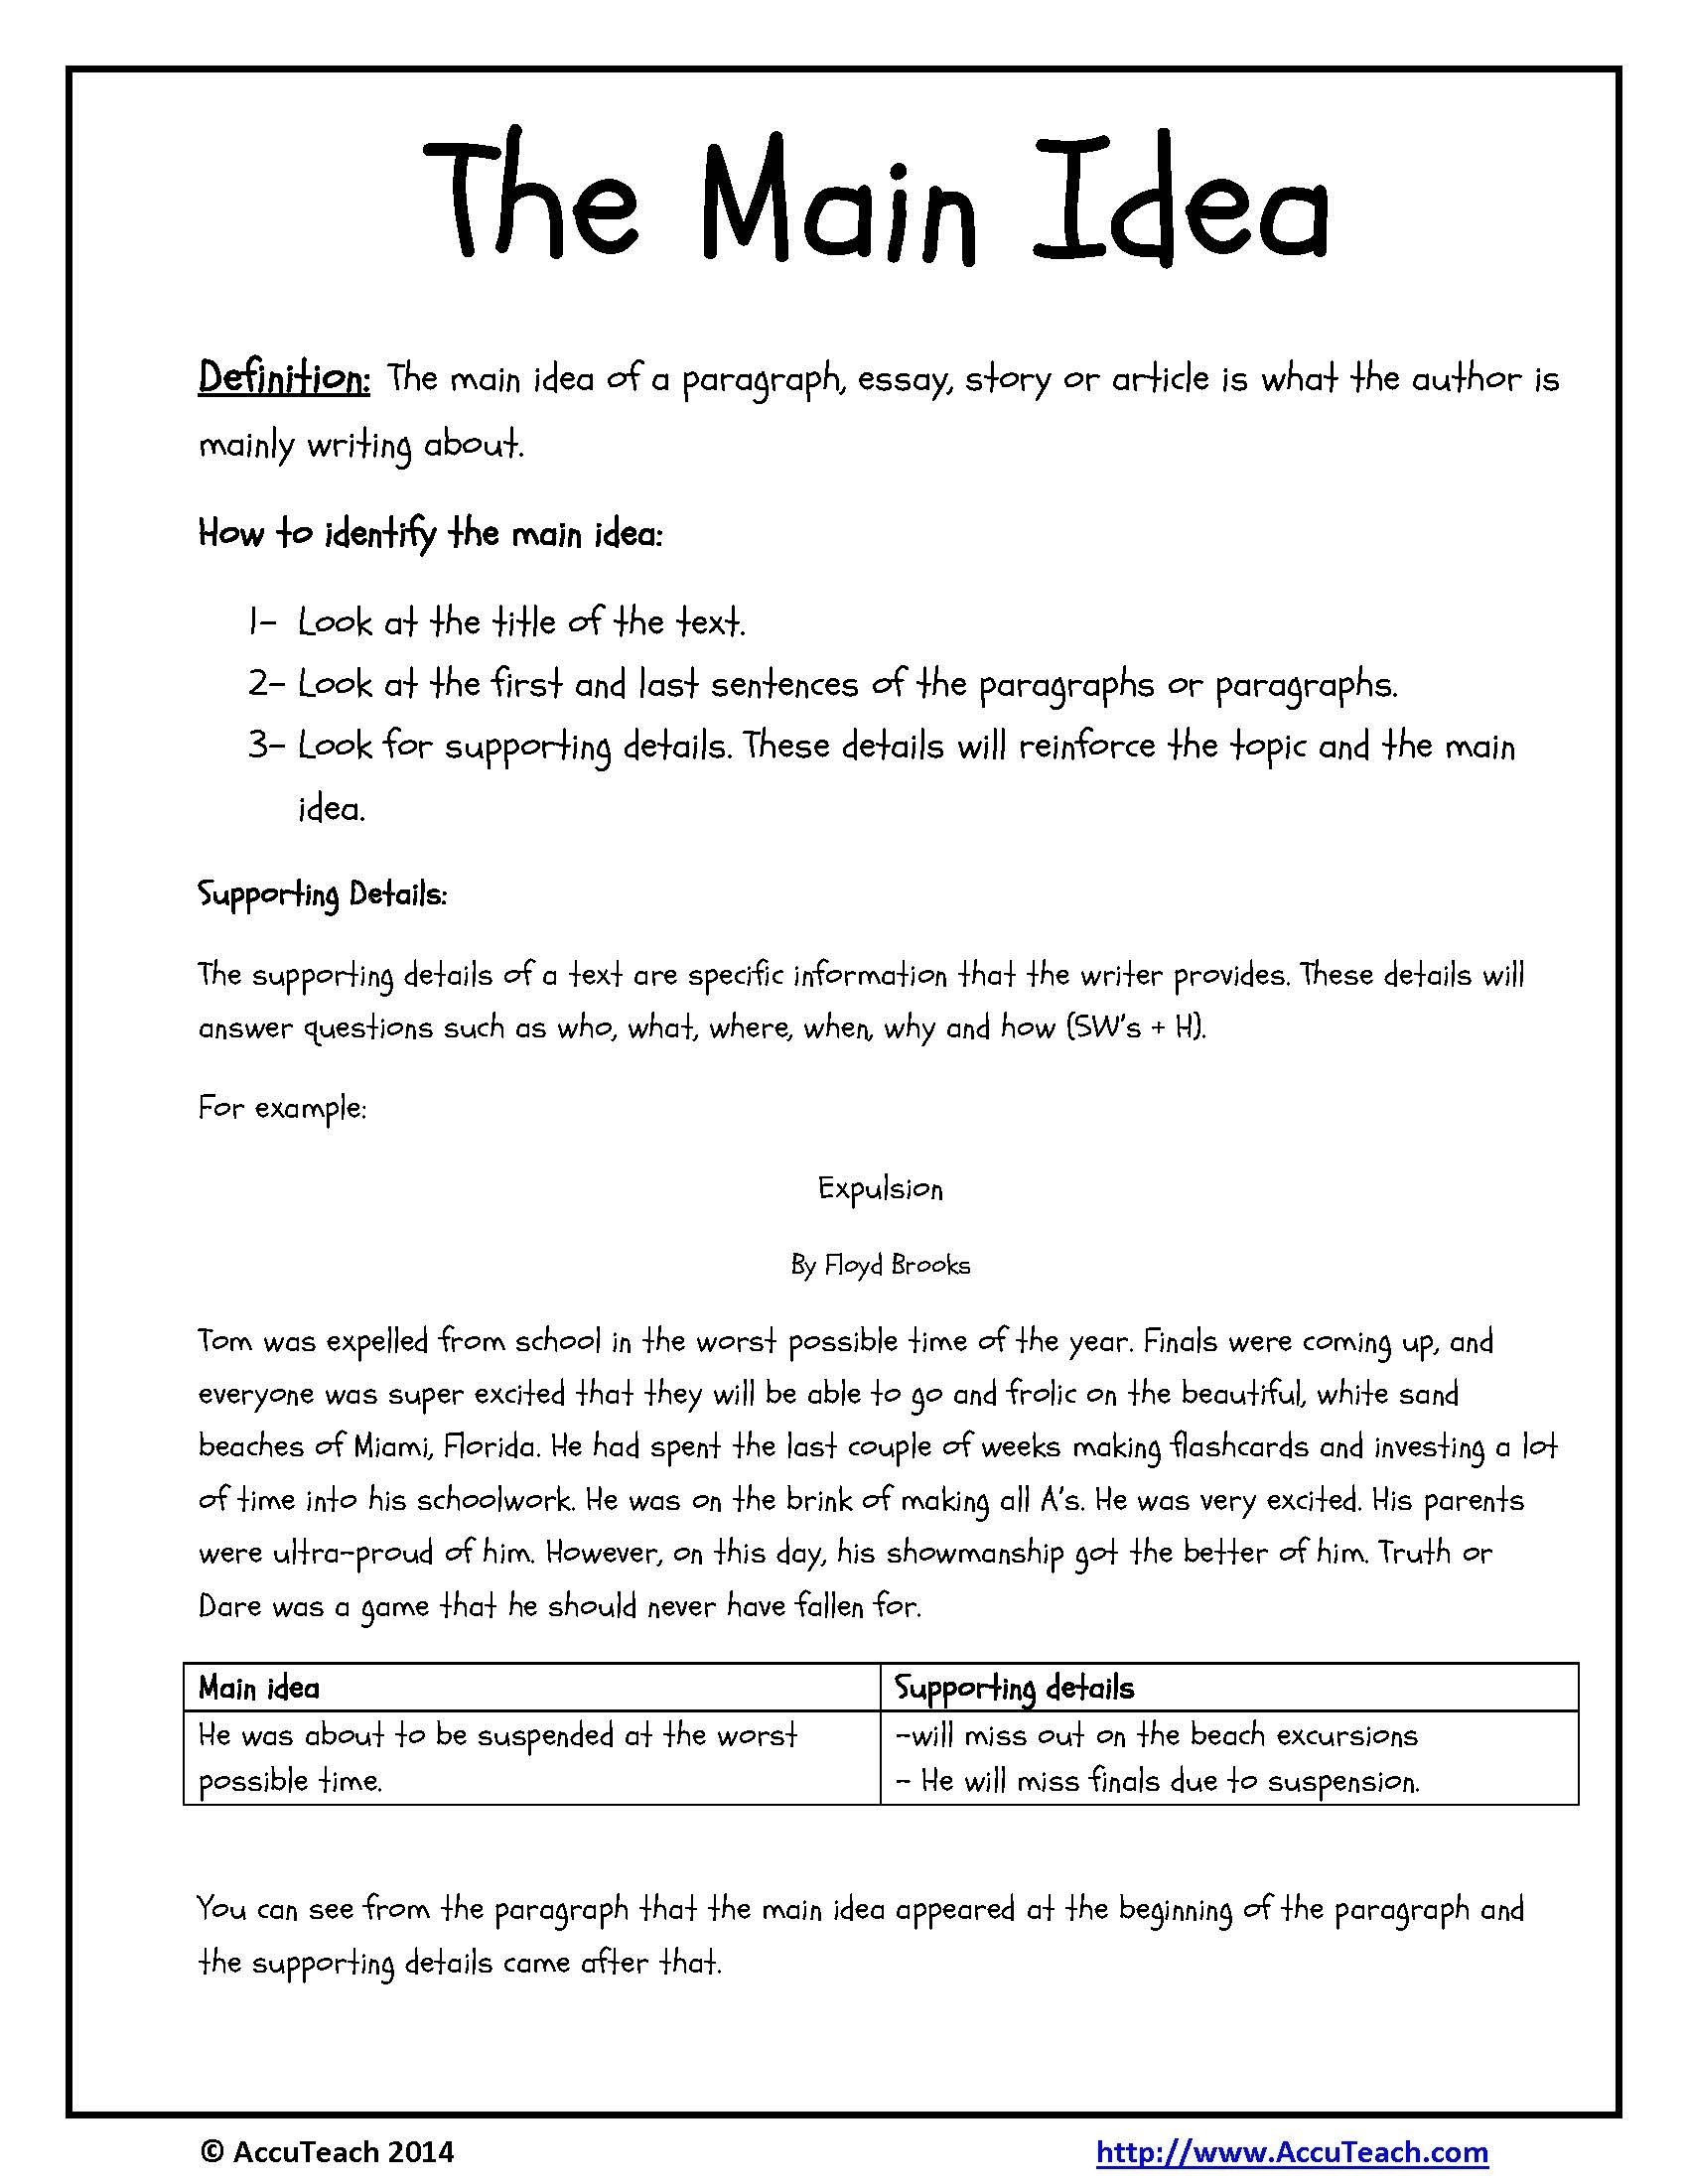 10 Awesome Main Idea Worksheets For Middle School main idea worksheets 3rd grade worksheets for all download and 4 2021